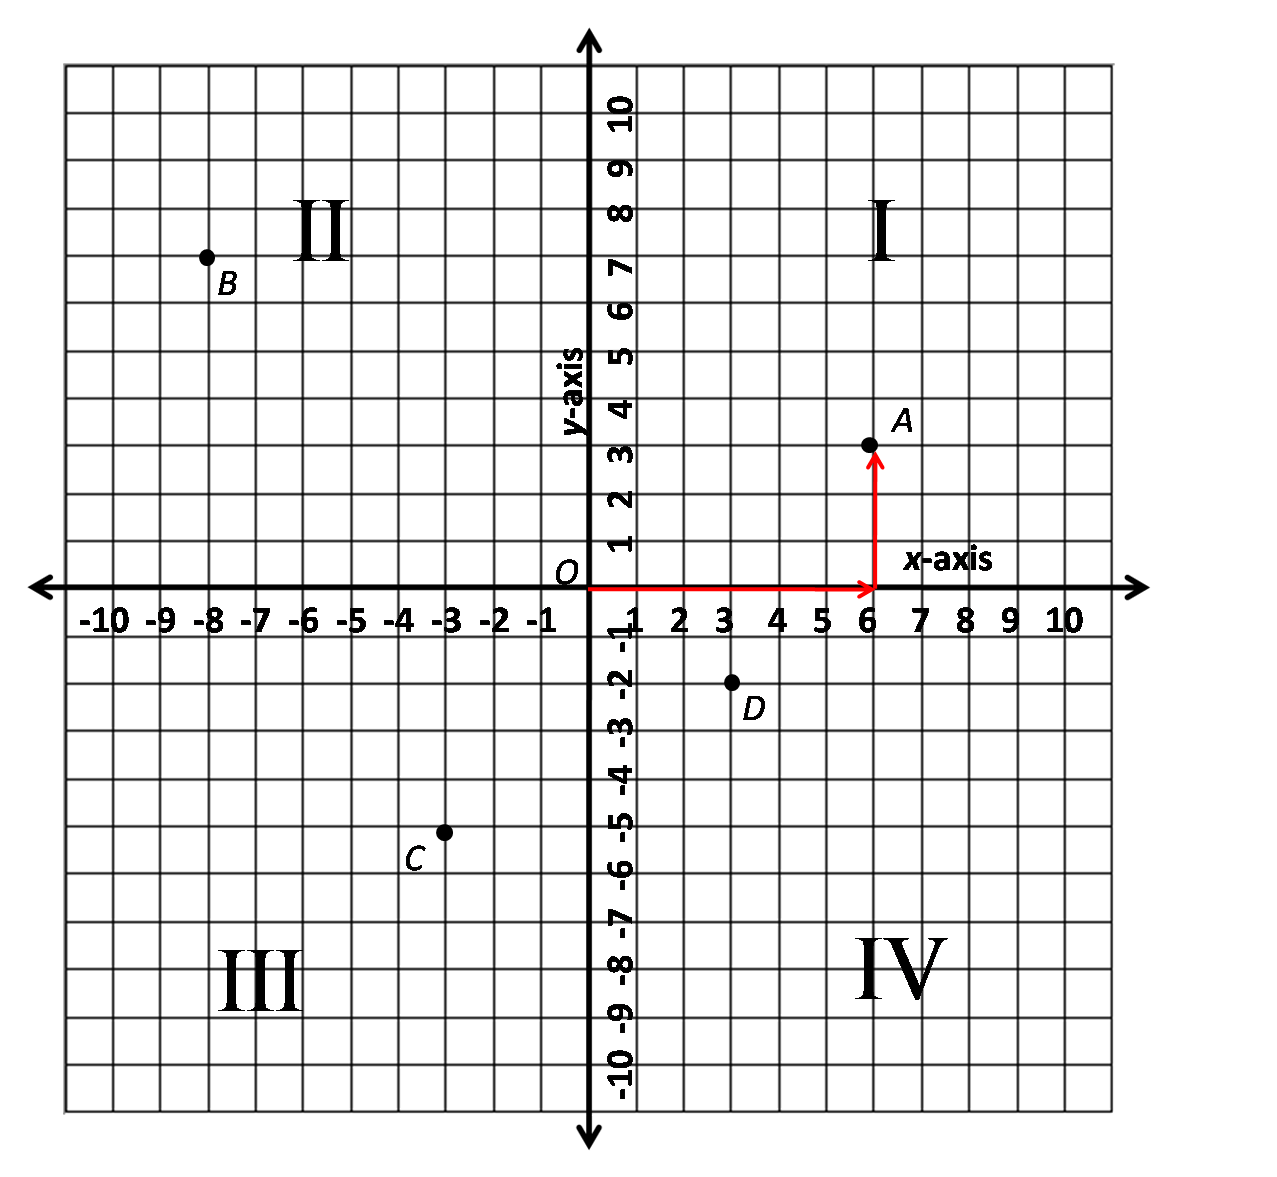 worksheet Graph Paper With X And Y Axis linear functions and graphs the archive of random material coordinate png